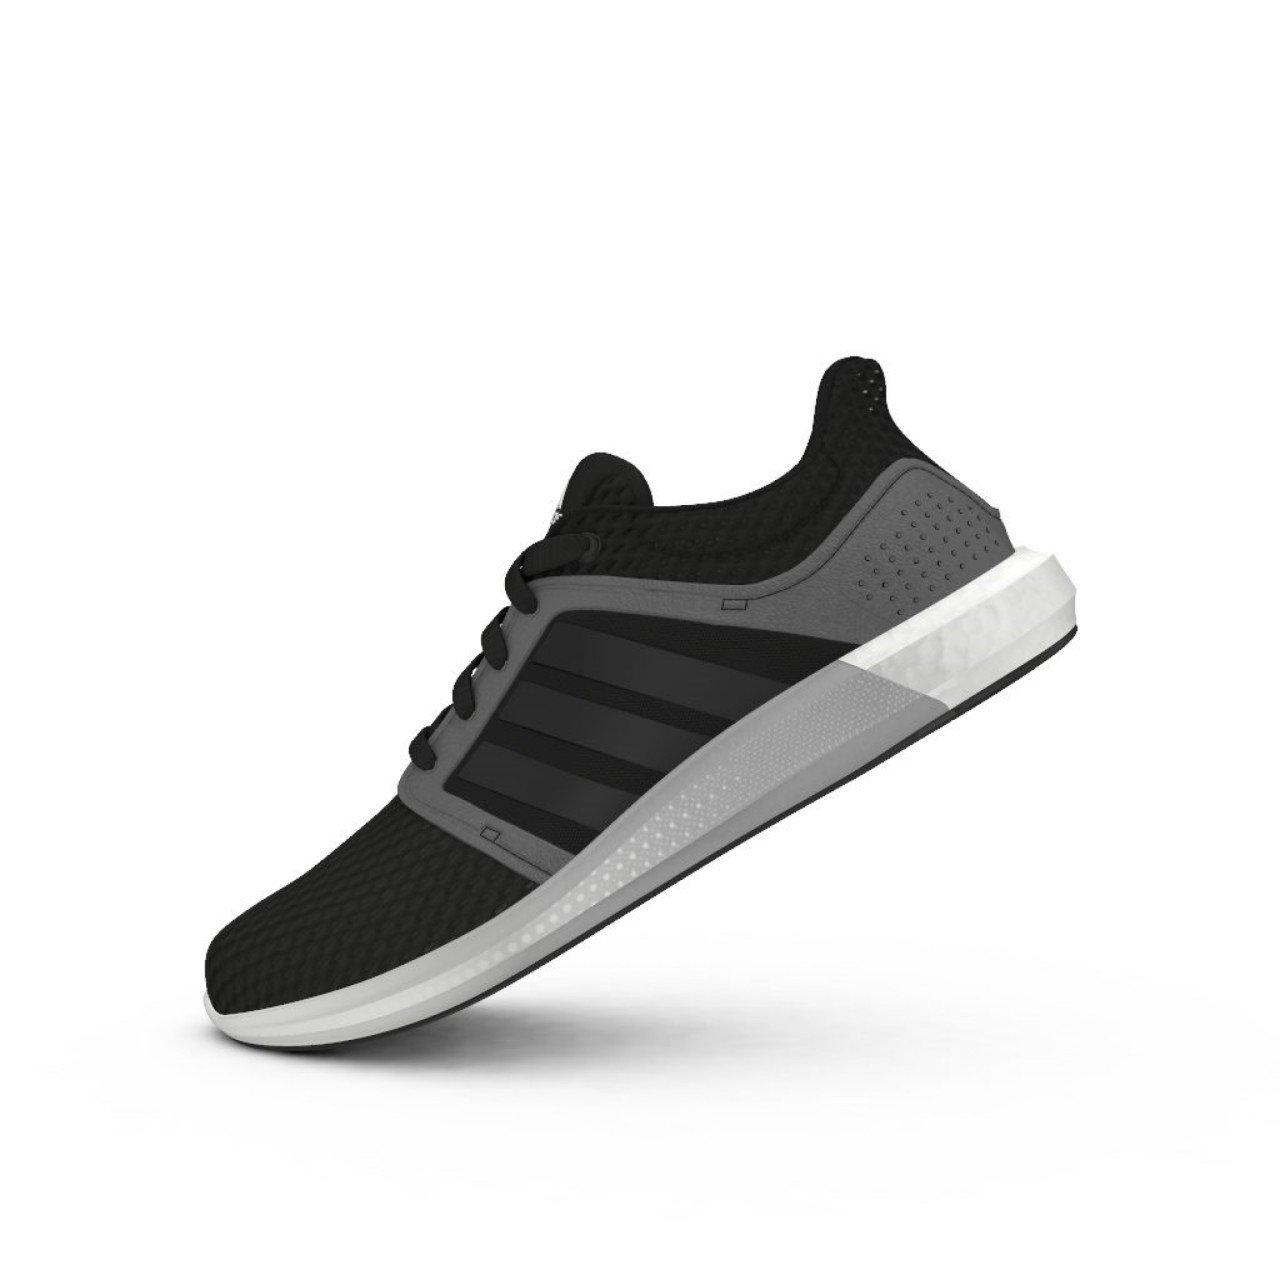 bdbc8efc84cc4 adidas Boost Solar RNR Running Shoes Mens Black Gym Fitness Trainers  Sneakers  Amazon.co.uk  Sports   Outdoors